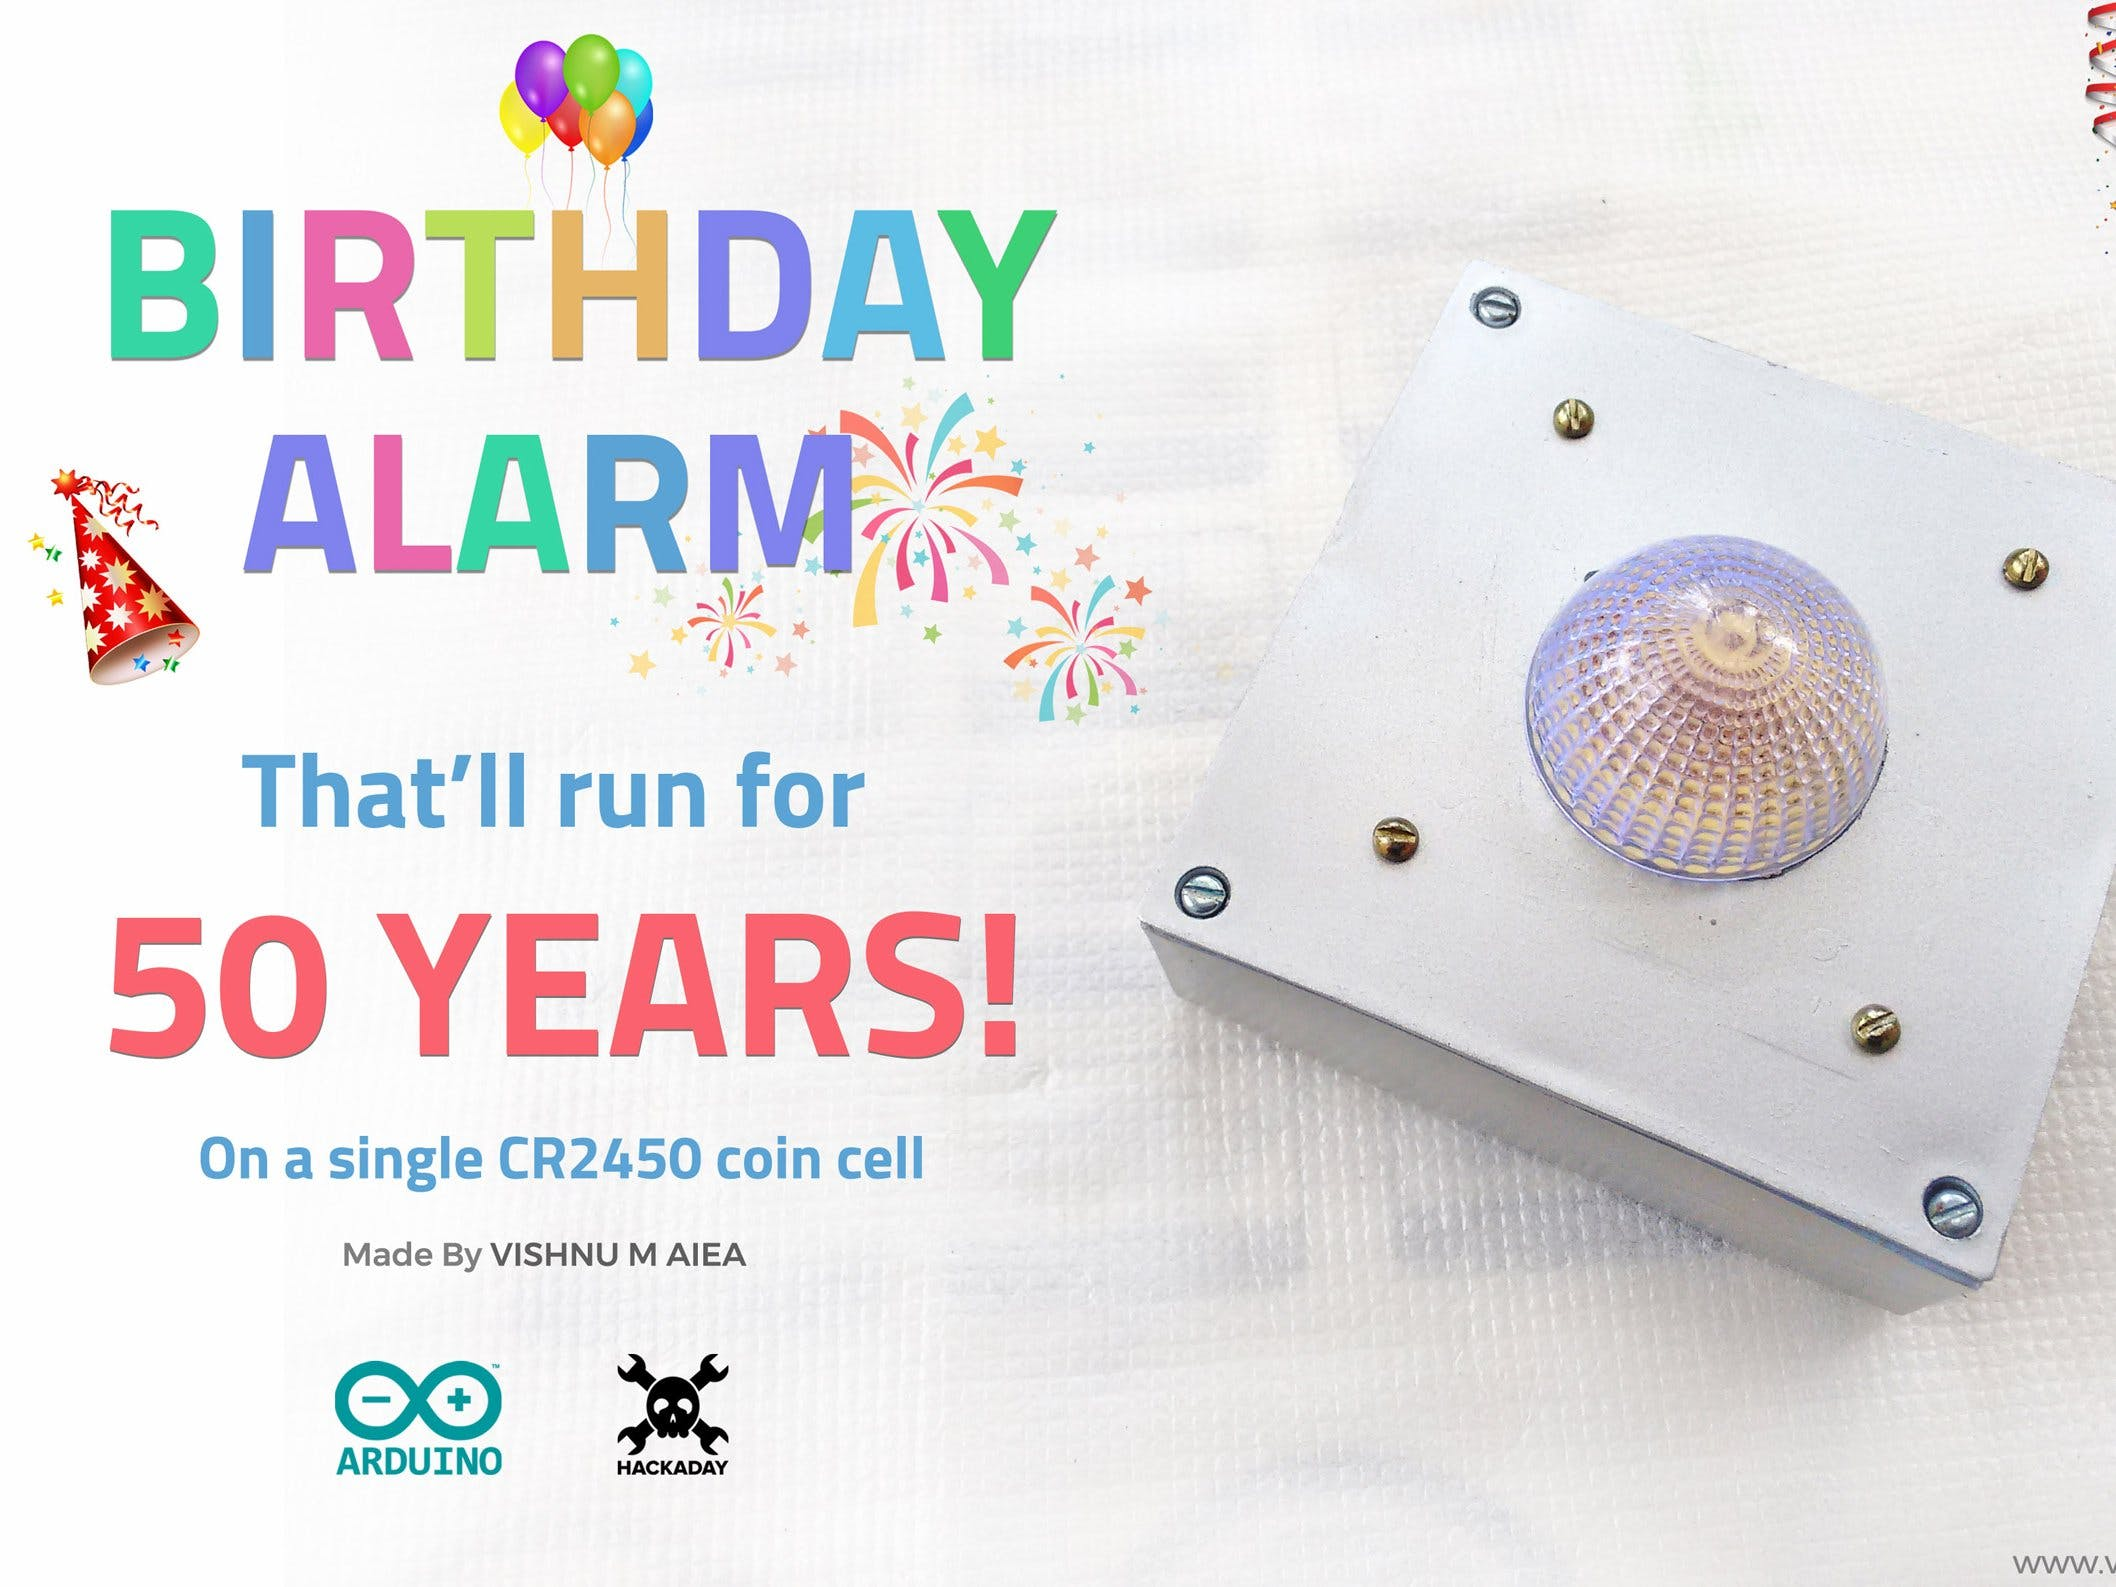 Birthday Alarm That'll Run for 50 Years